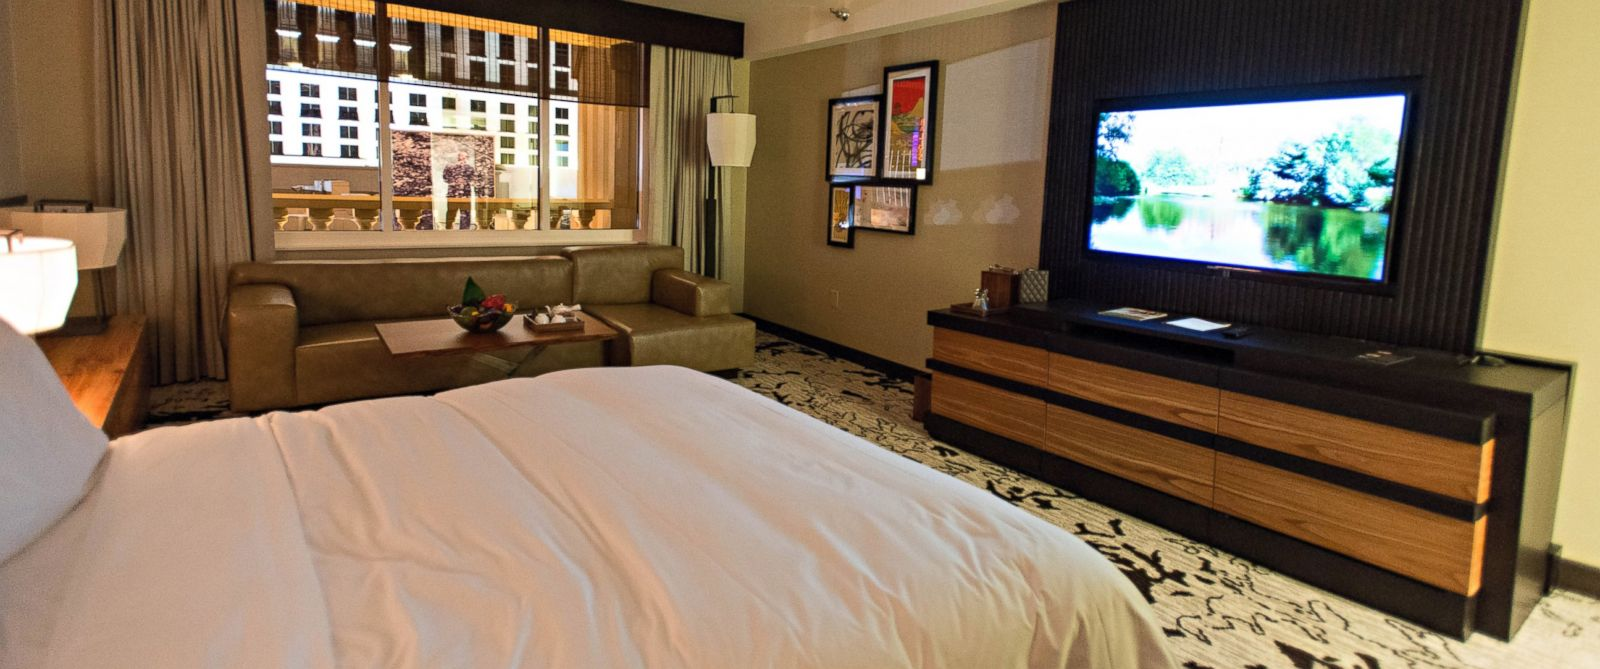 PHOTO: The Nobu Hotel, located within Caesars Palace, has Japanese-themed rooms and gives guests access to all of Caesar Palaces amenities.